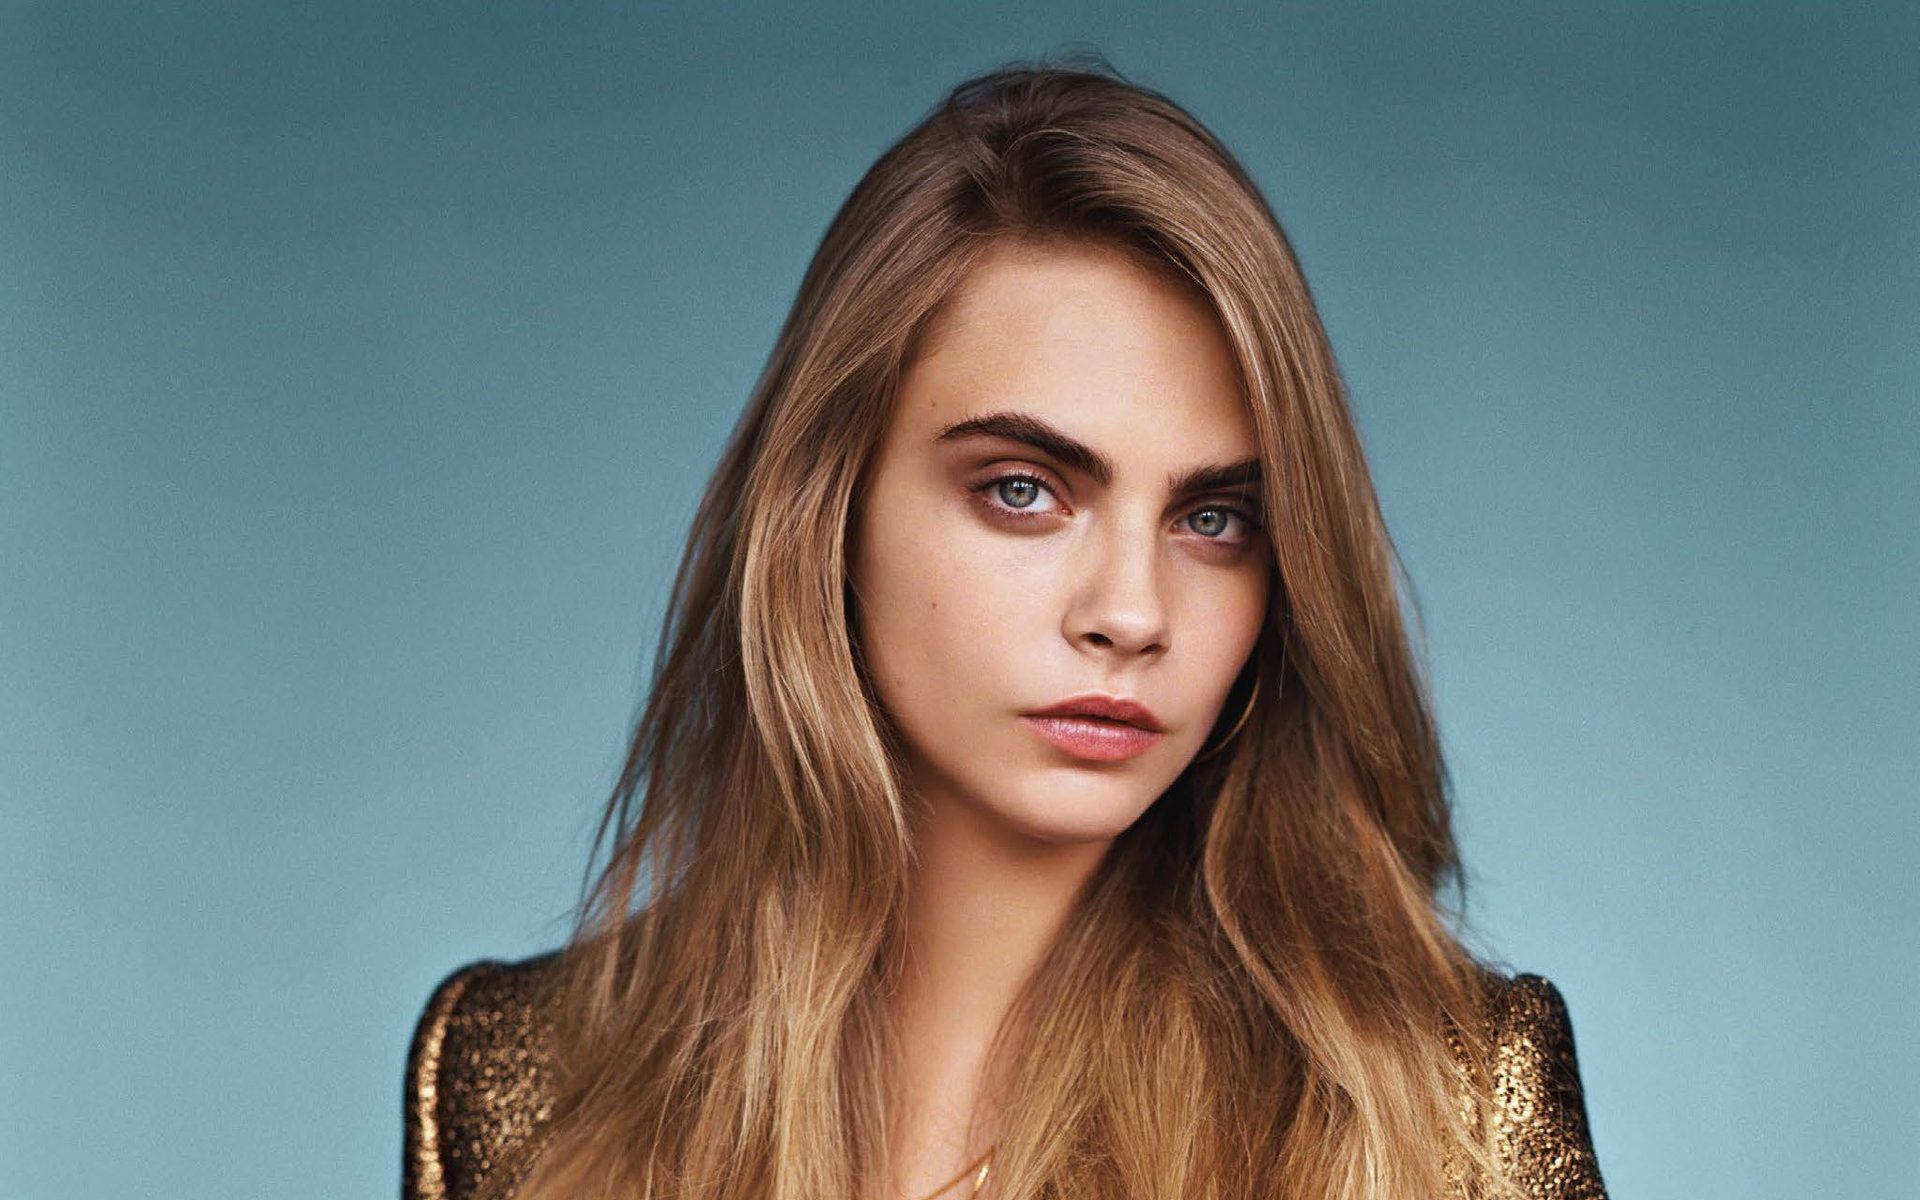 Awesome Cara Delevingne Free Wallpaper Id 168889 For Hd 1920x1200 Desktop